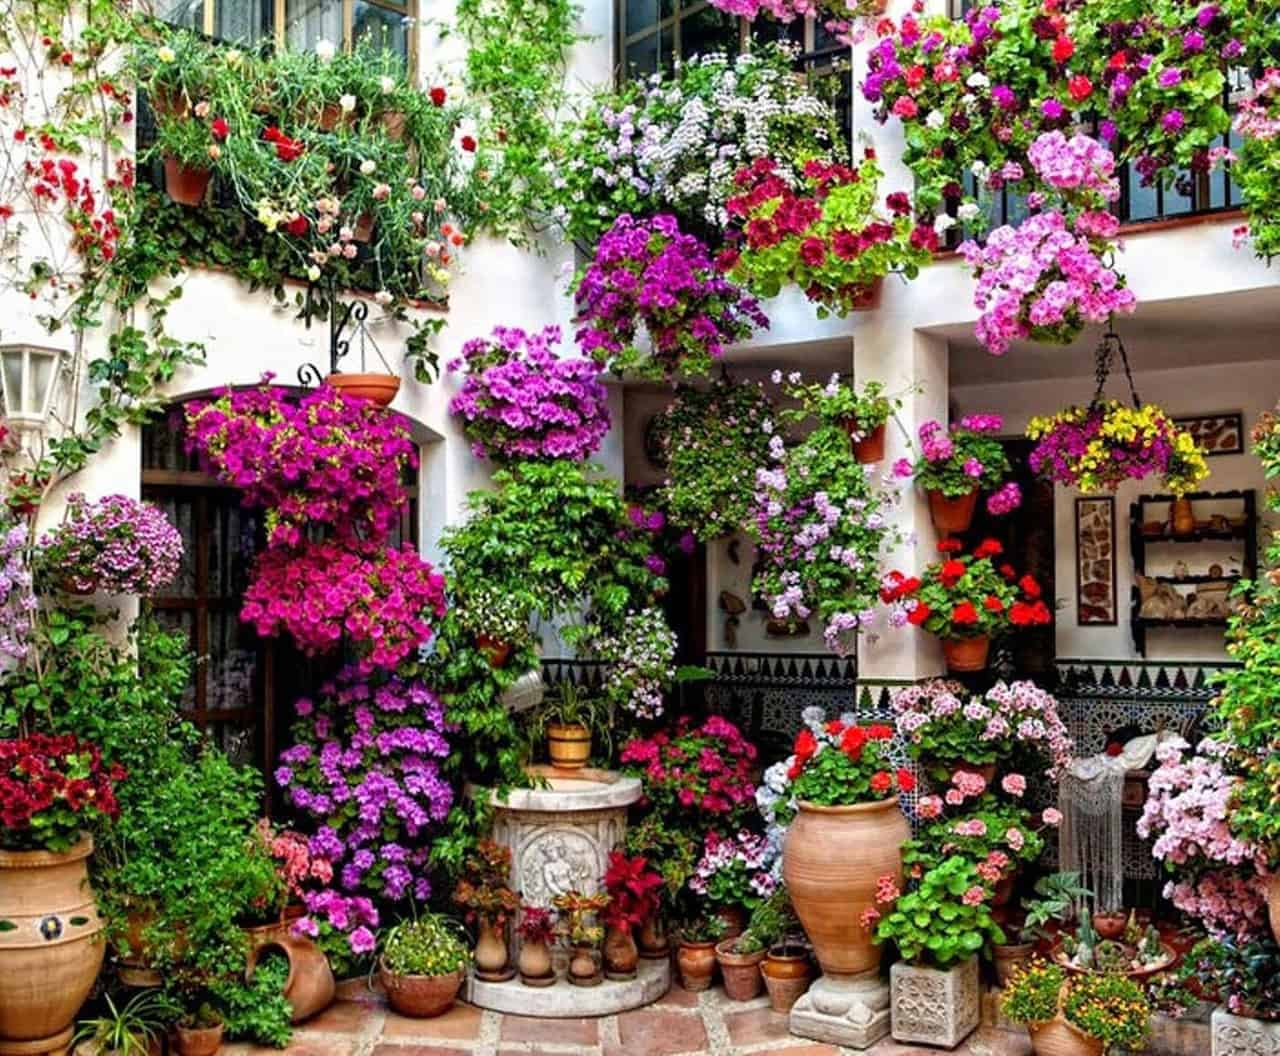 19-a-two-story-hanging-garden-of-flowers-vertical-garden-decor